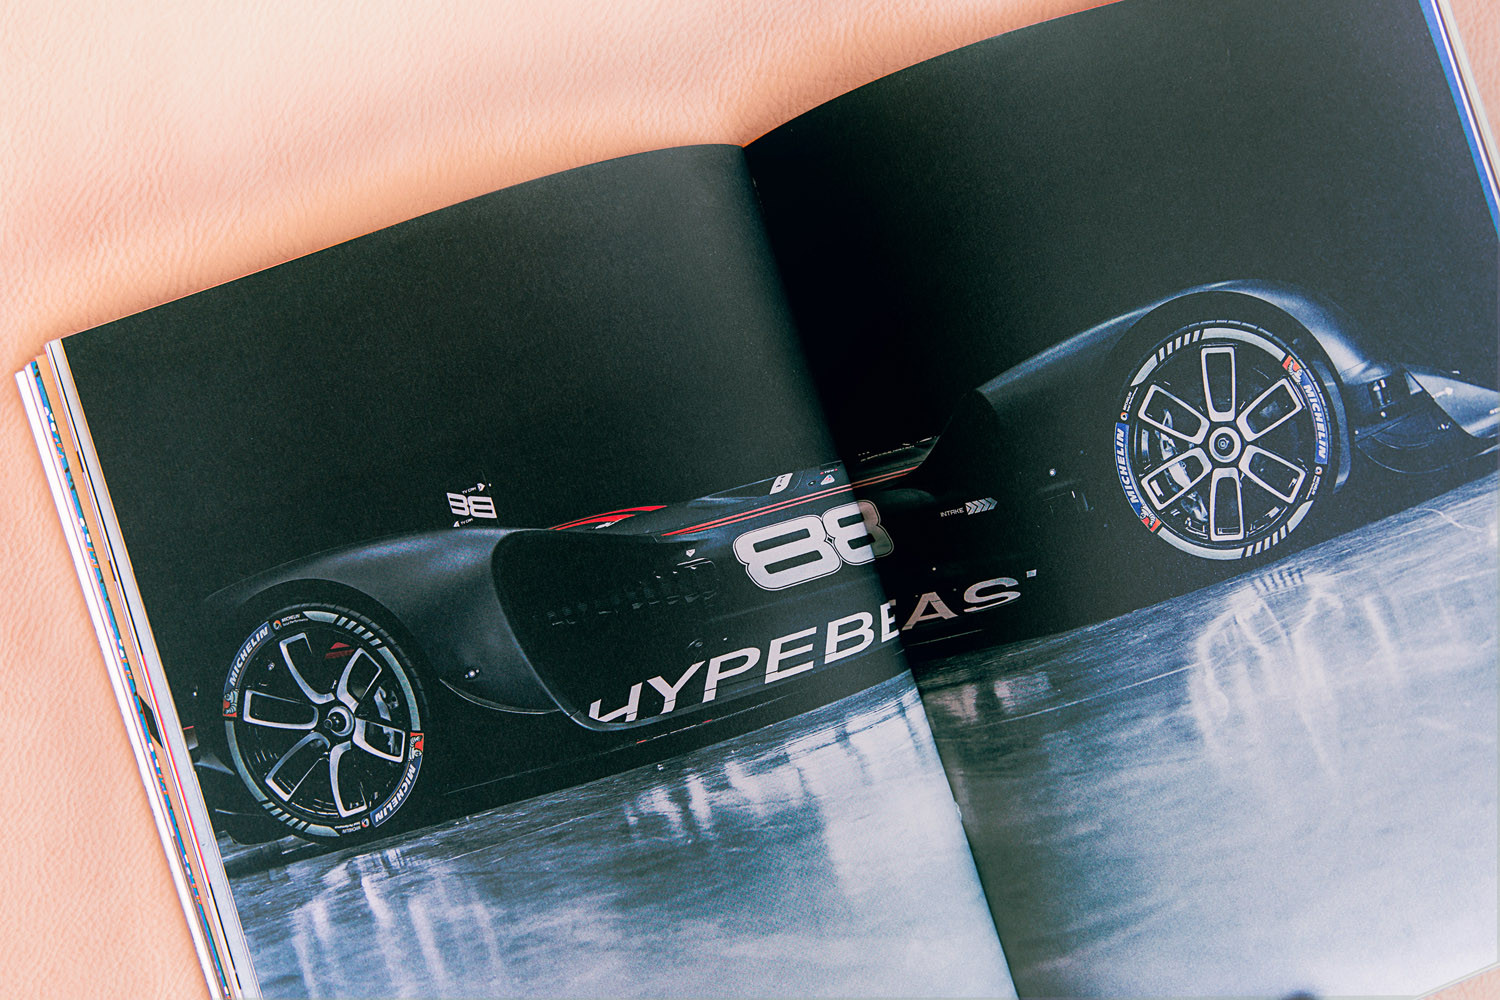 HYPEBEAST Magazine Issue 19: The Temporal Issue